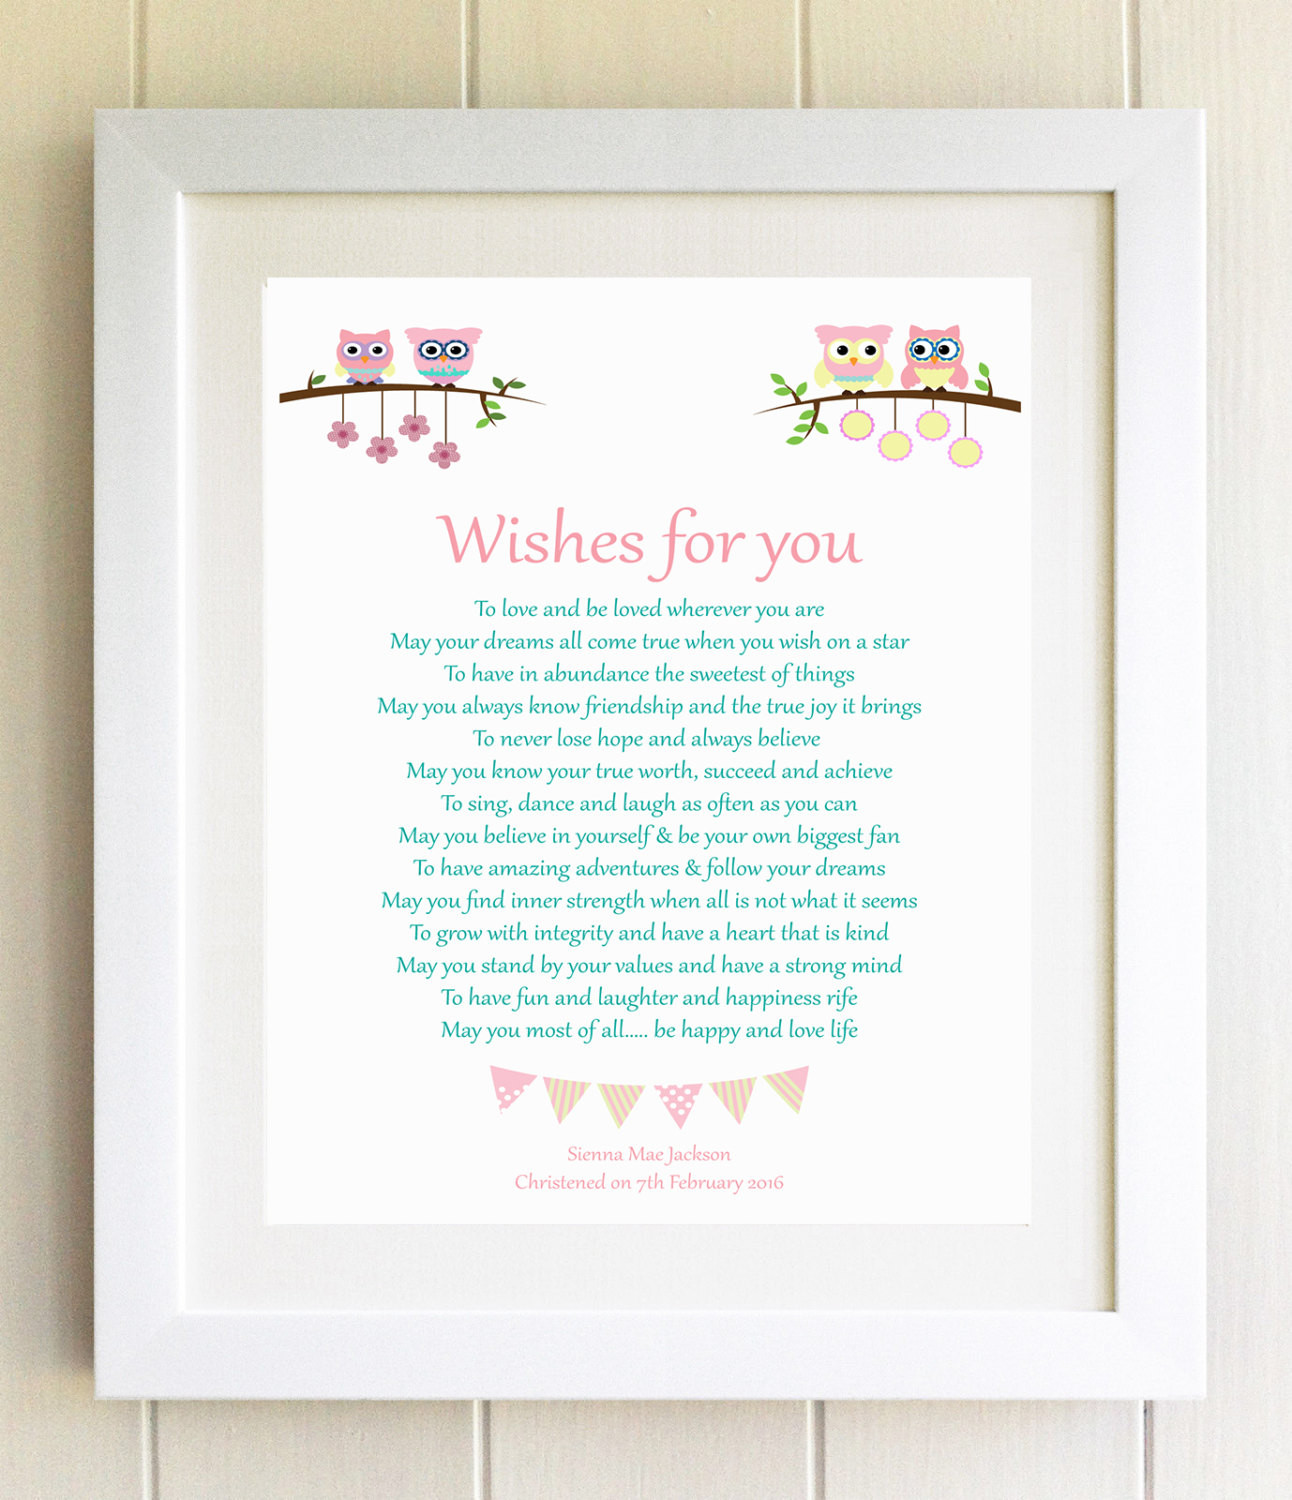 Baby Naming Gift Ideas  Christening Gift Plaque Naming Ceremony New Baby Gift Wishes